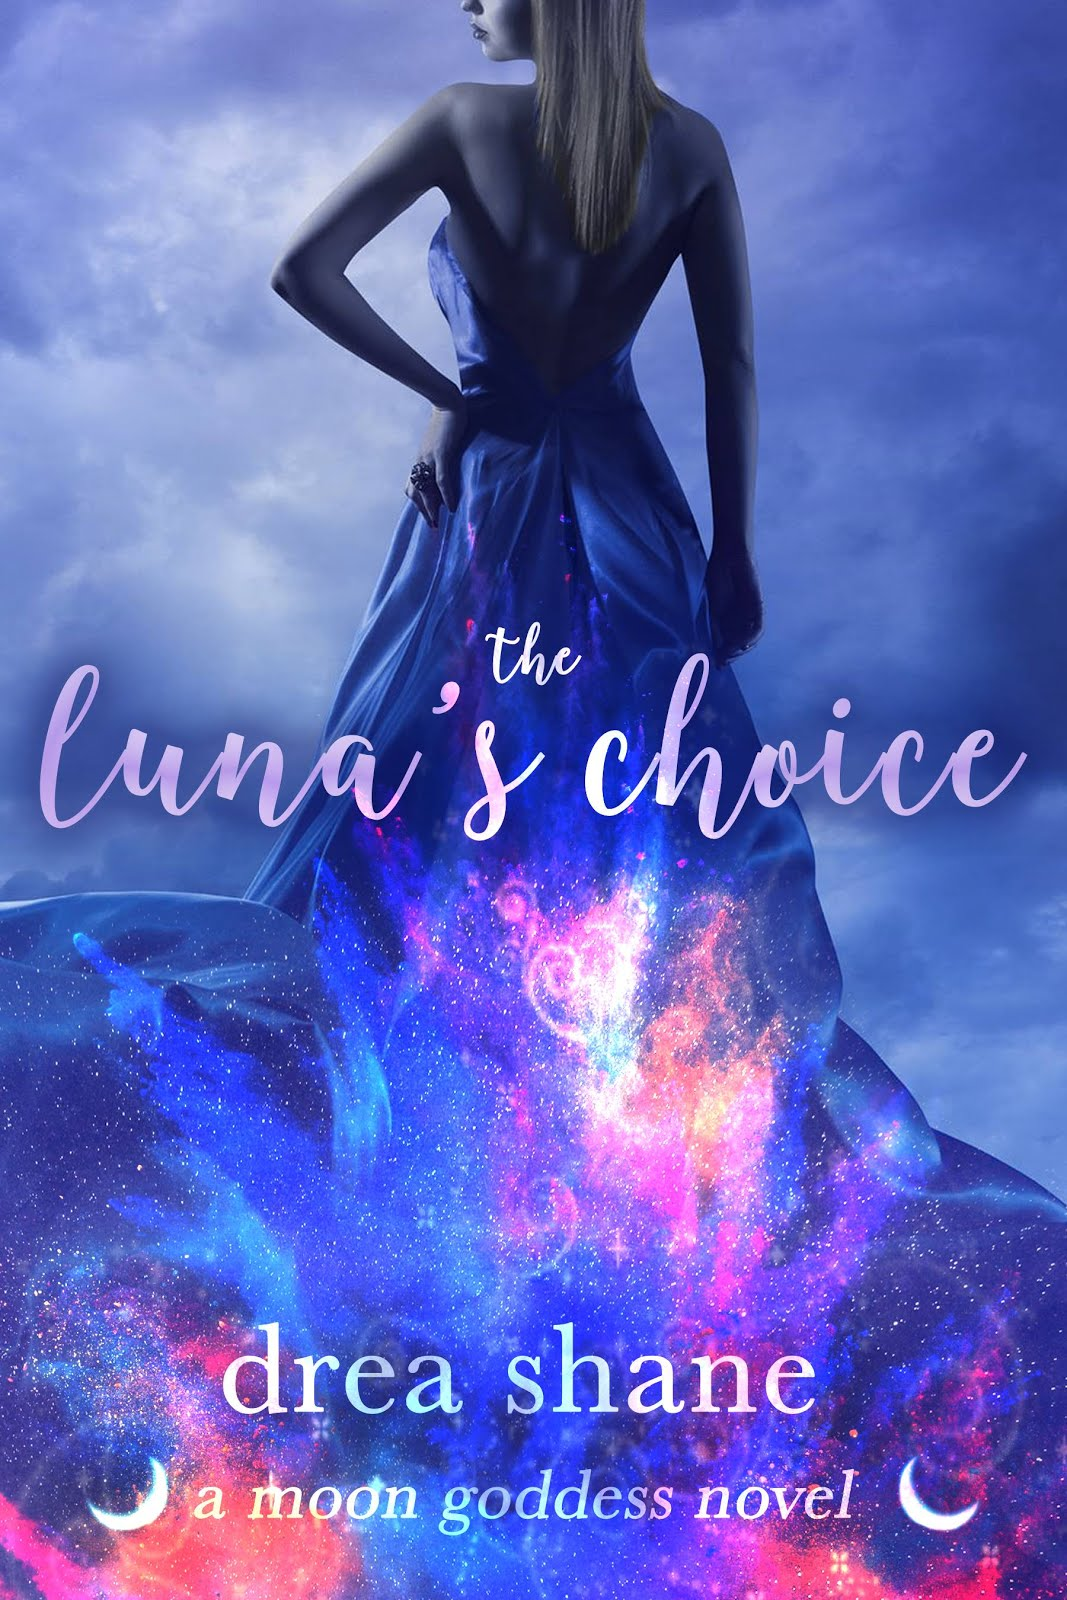 The Luna's Choice coming soon!